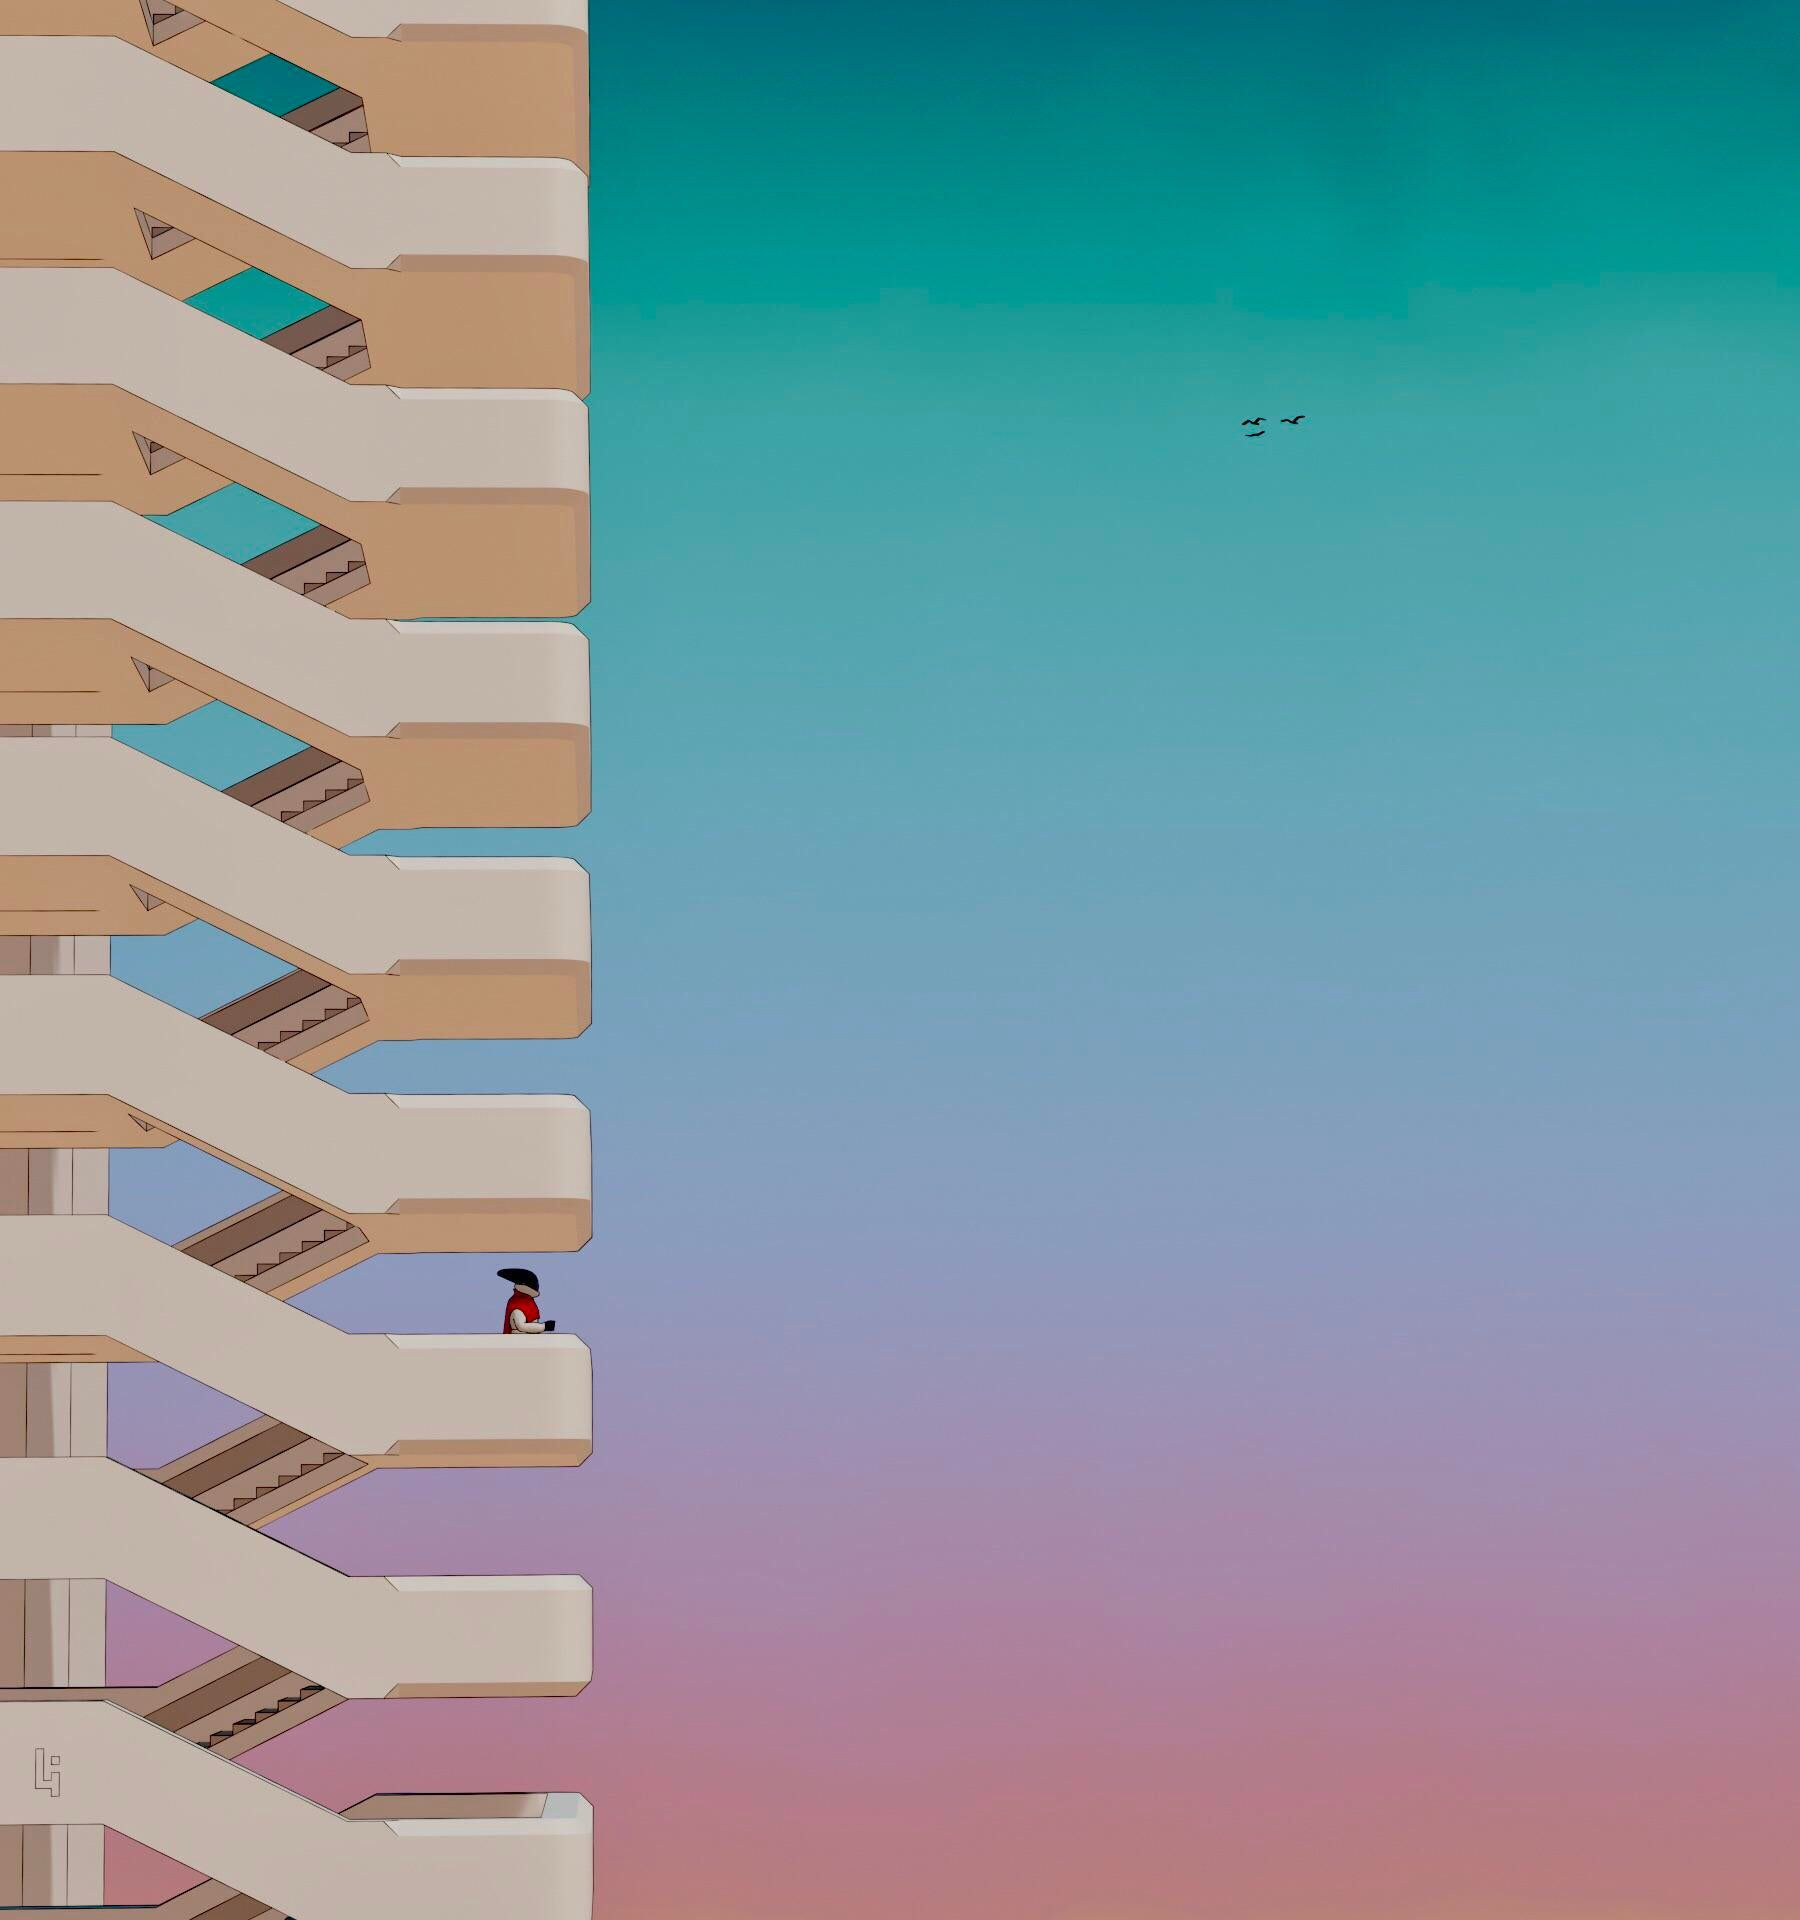 Pin by Dan Seemann on Drawing - Vaporwave (With images ...